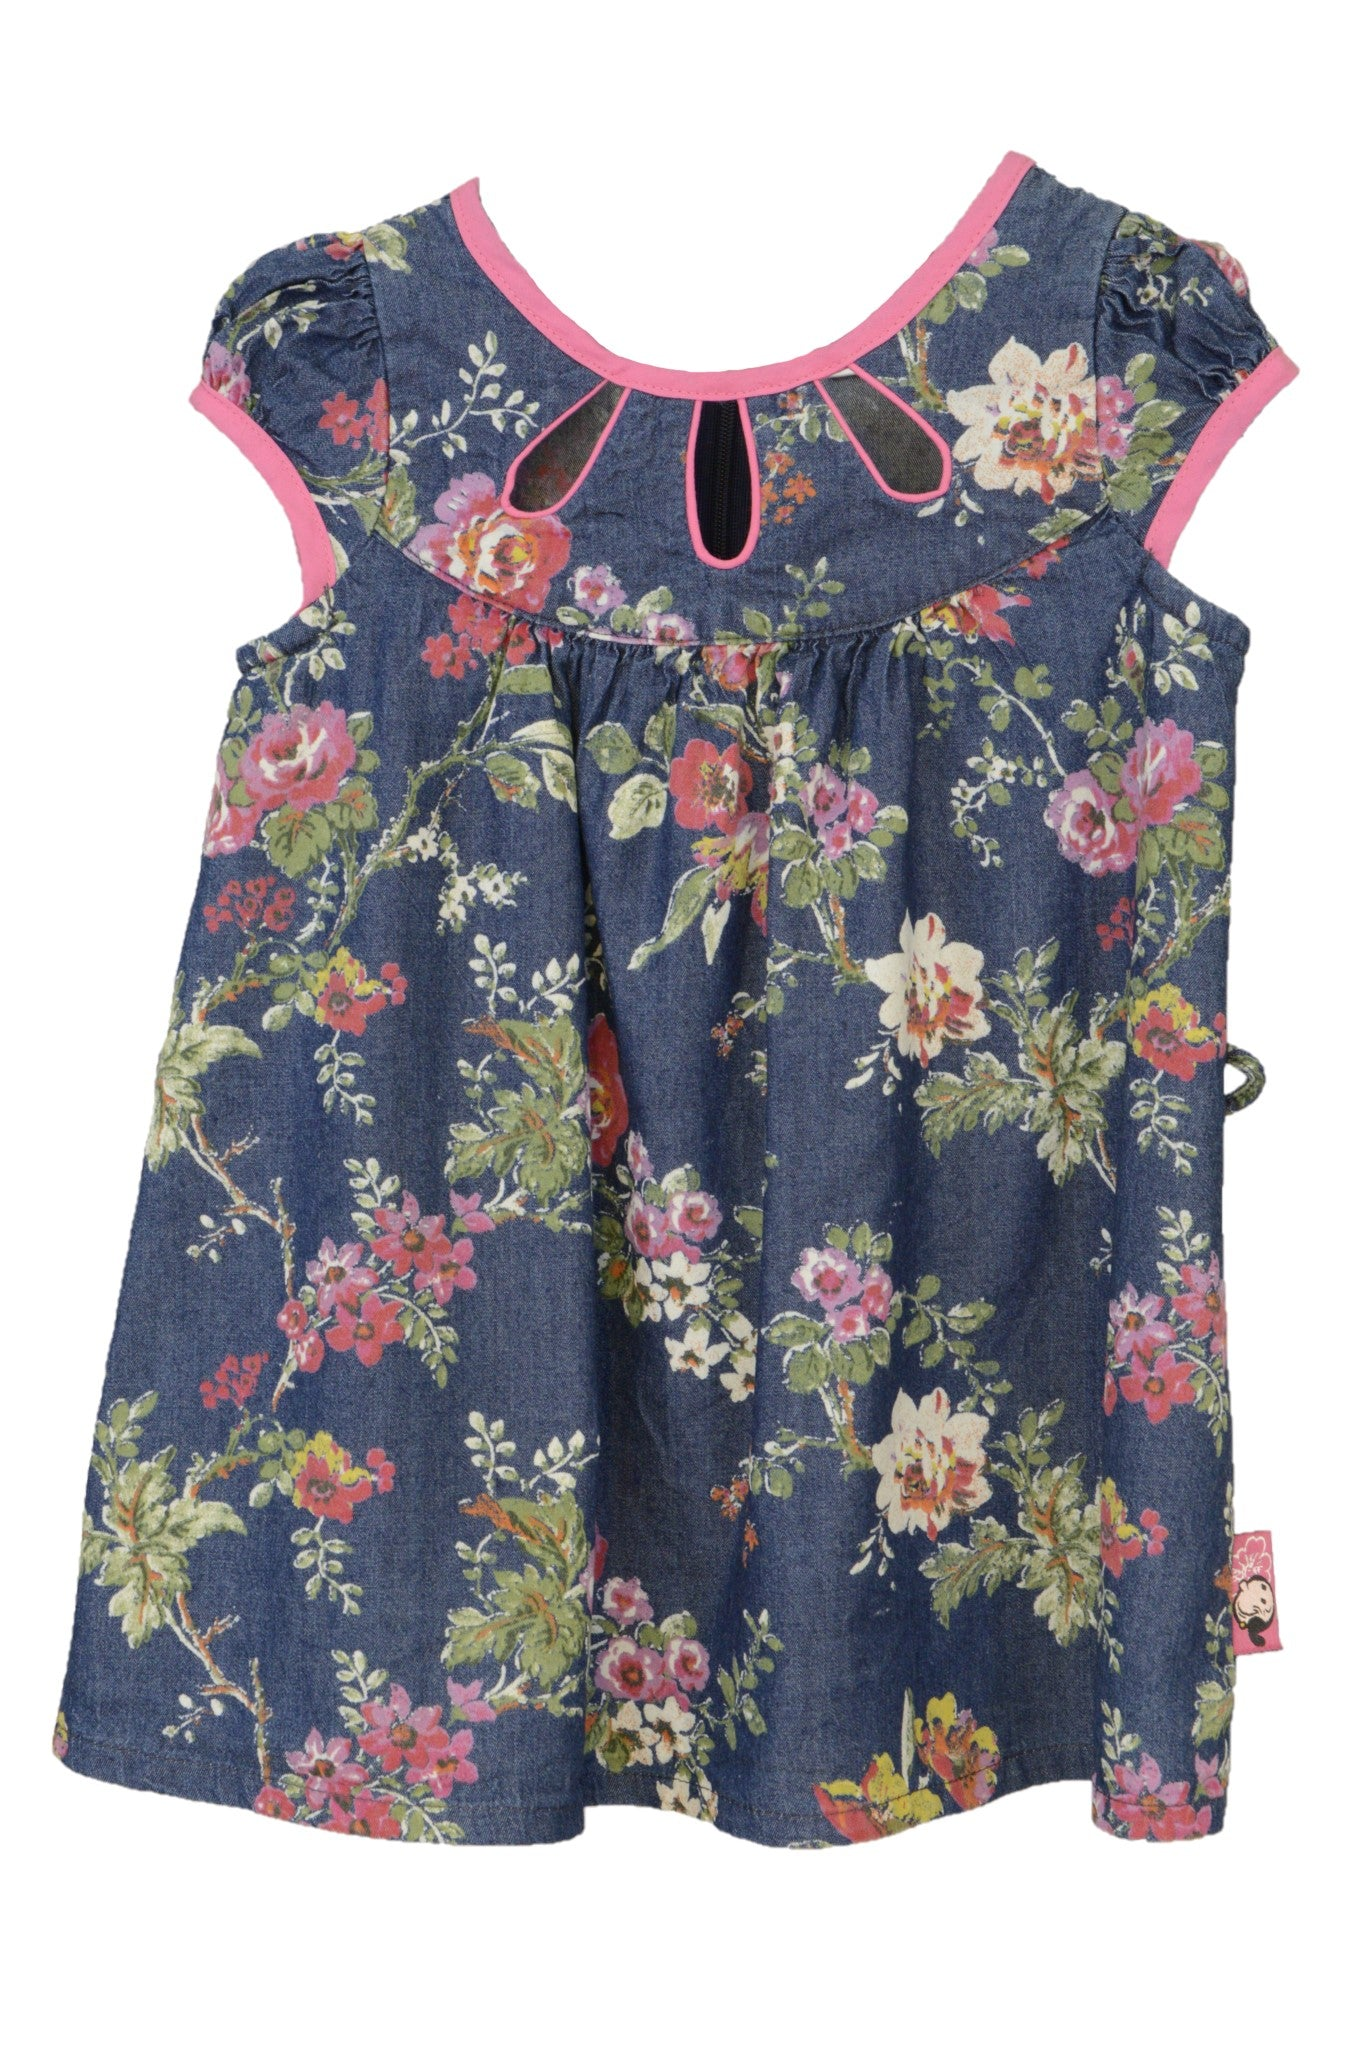 Baby Popeye navy and floral baby dress